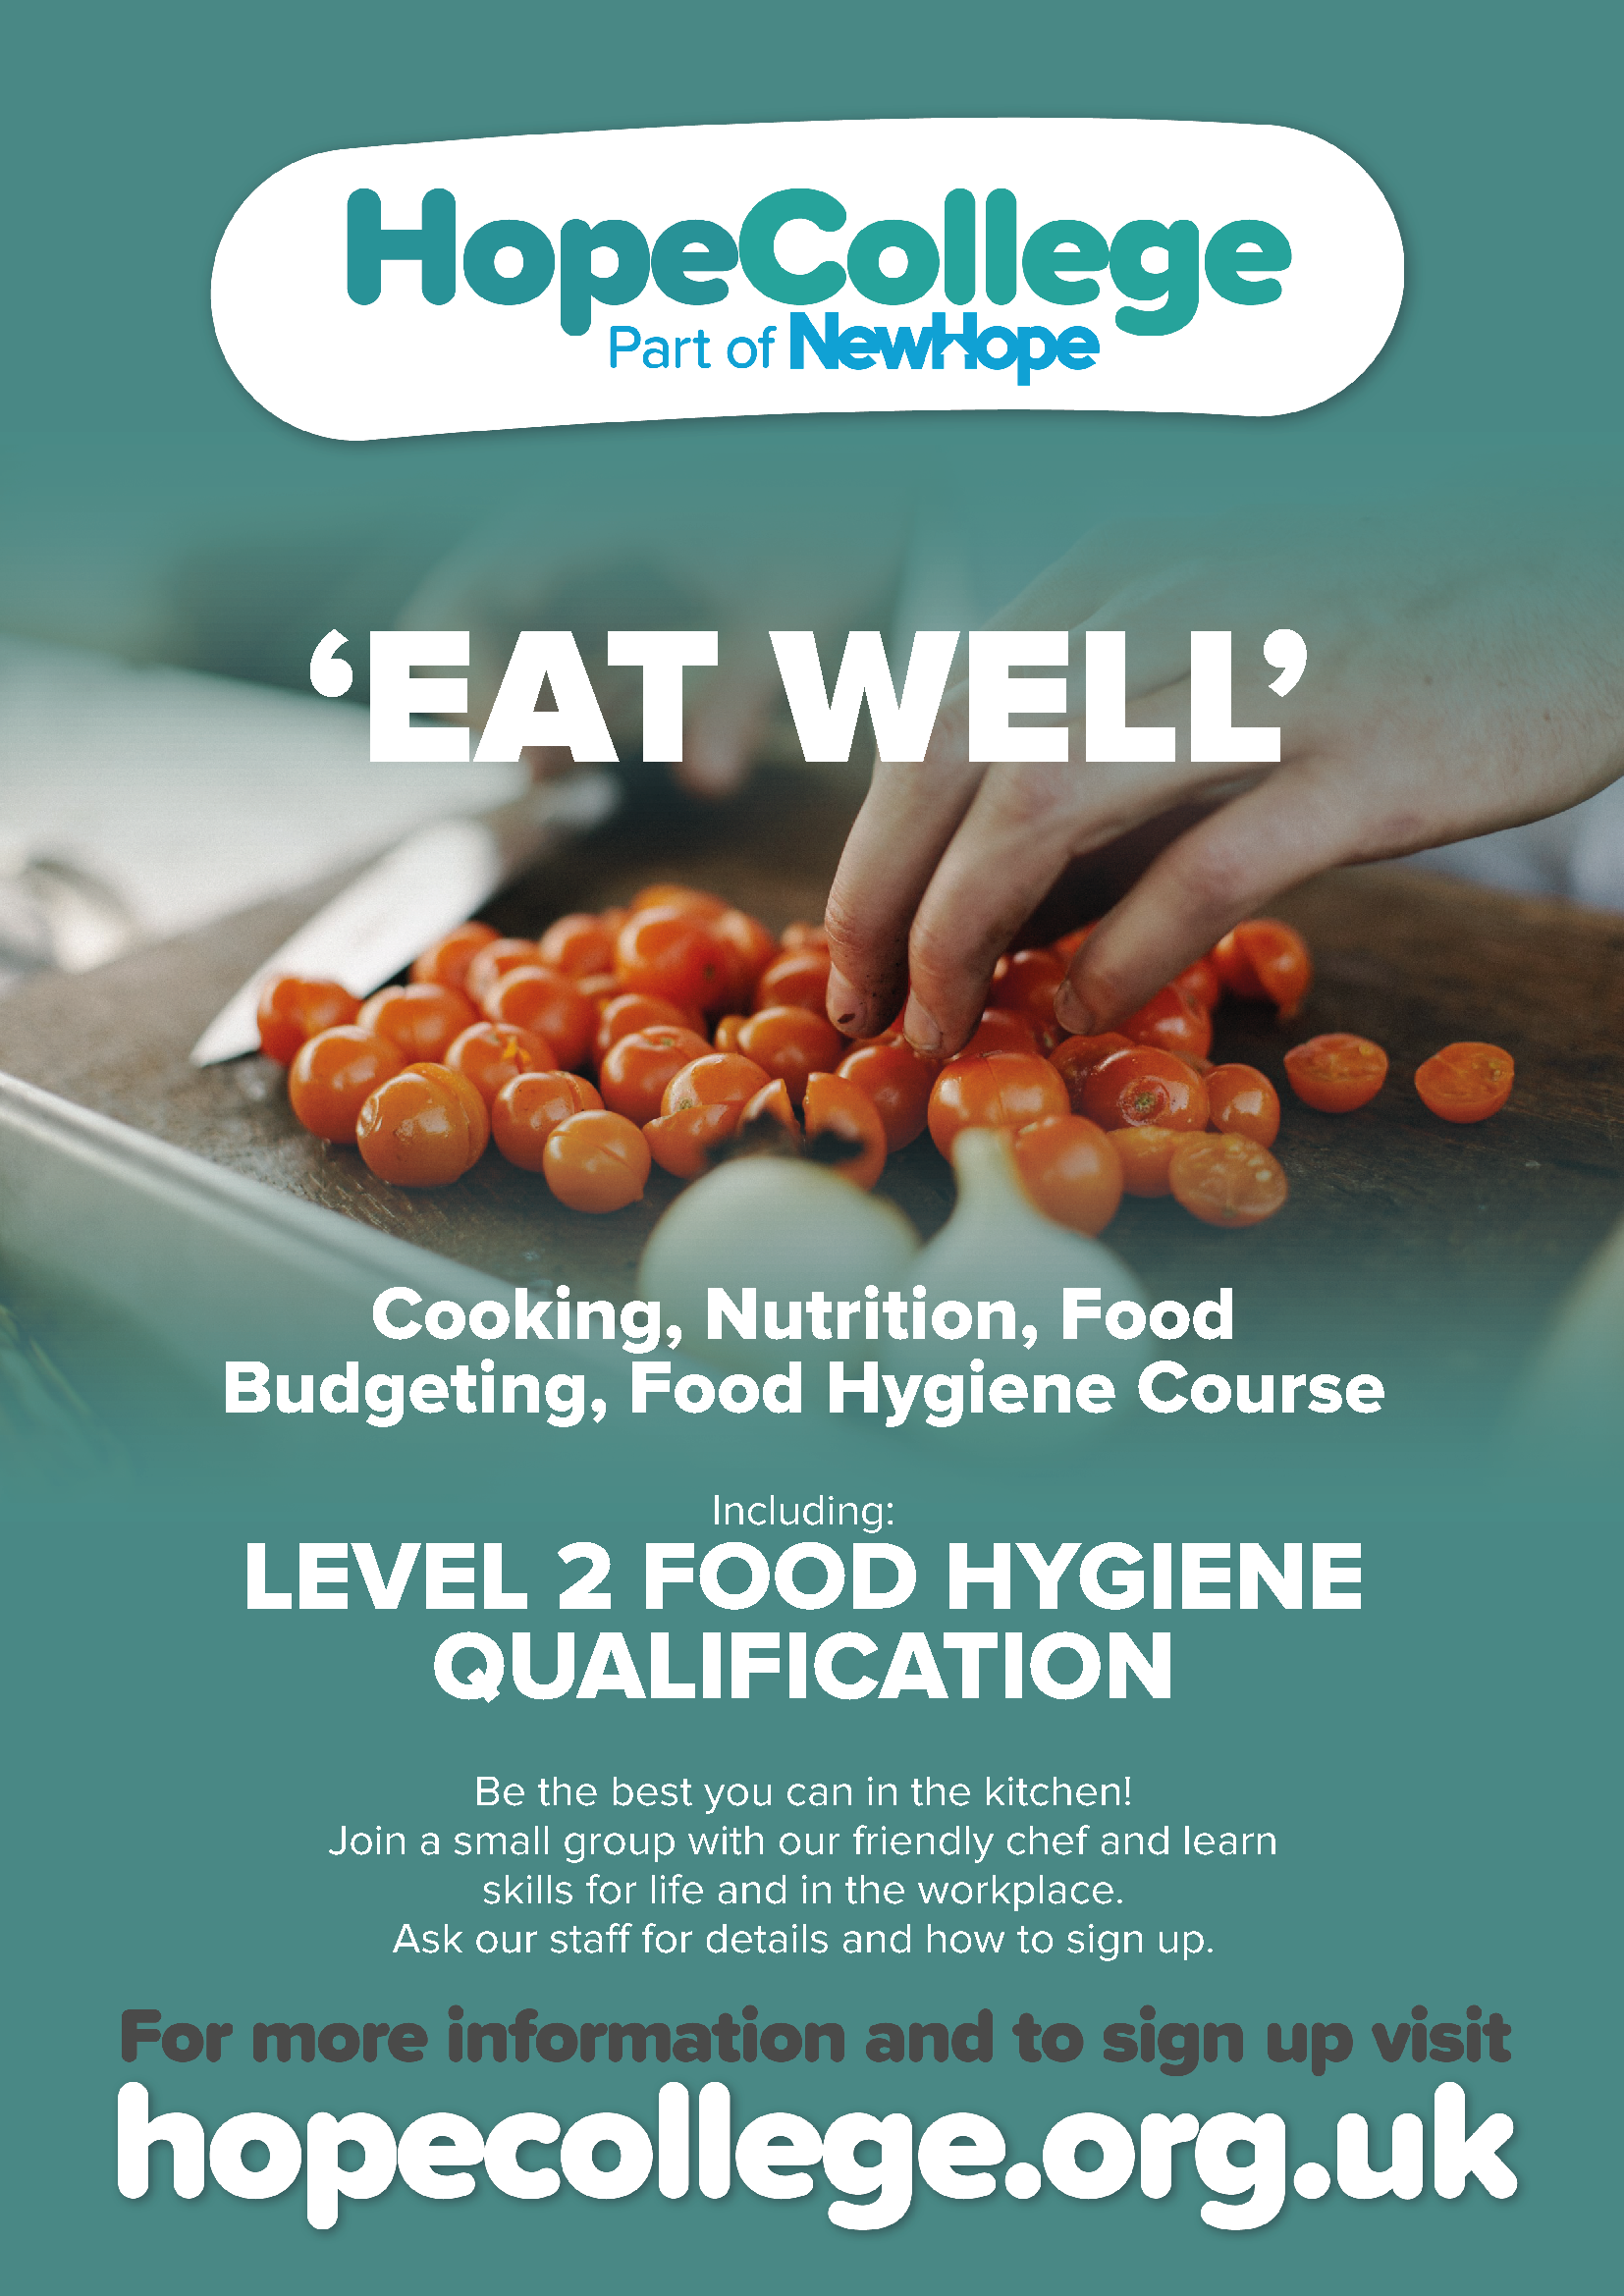 EAT WELL Hope college poster 2018 2.png